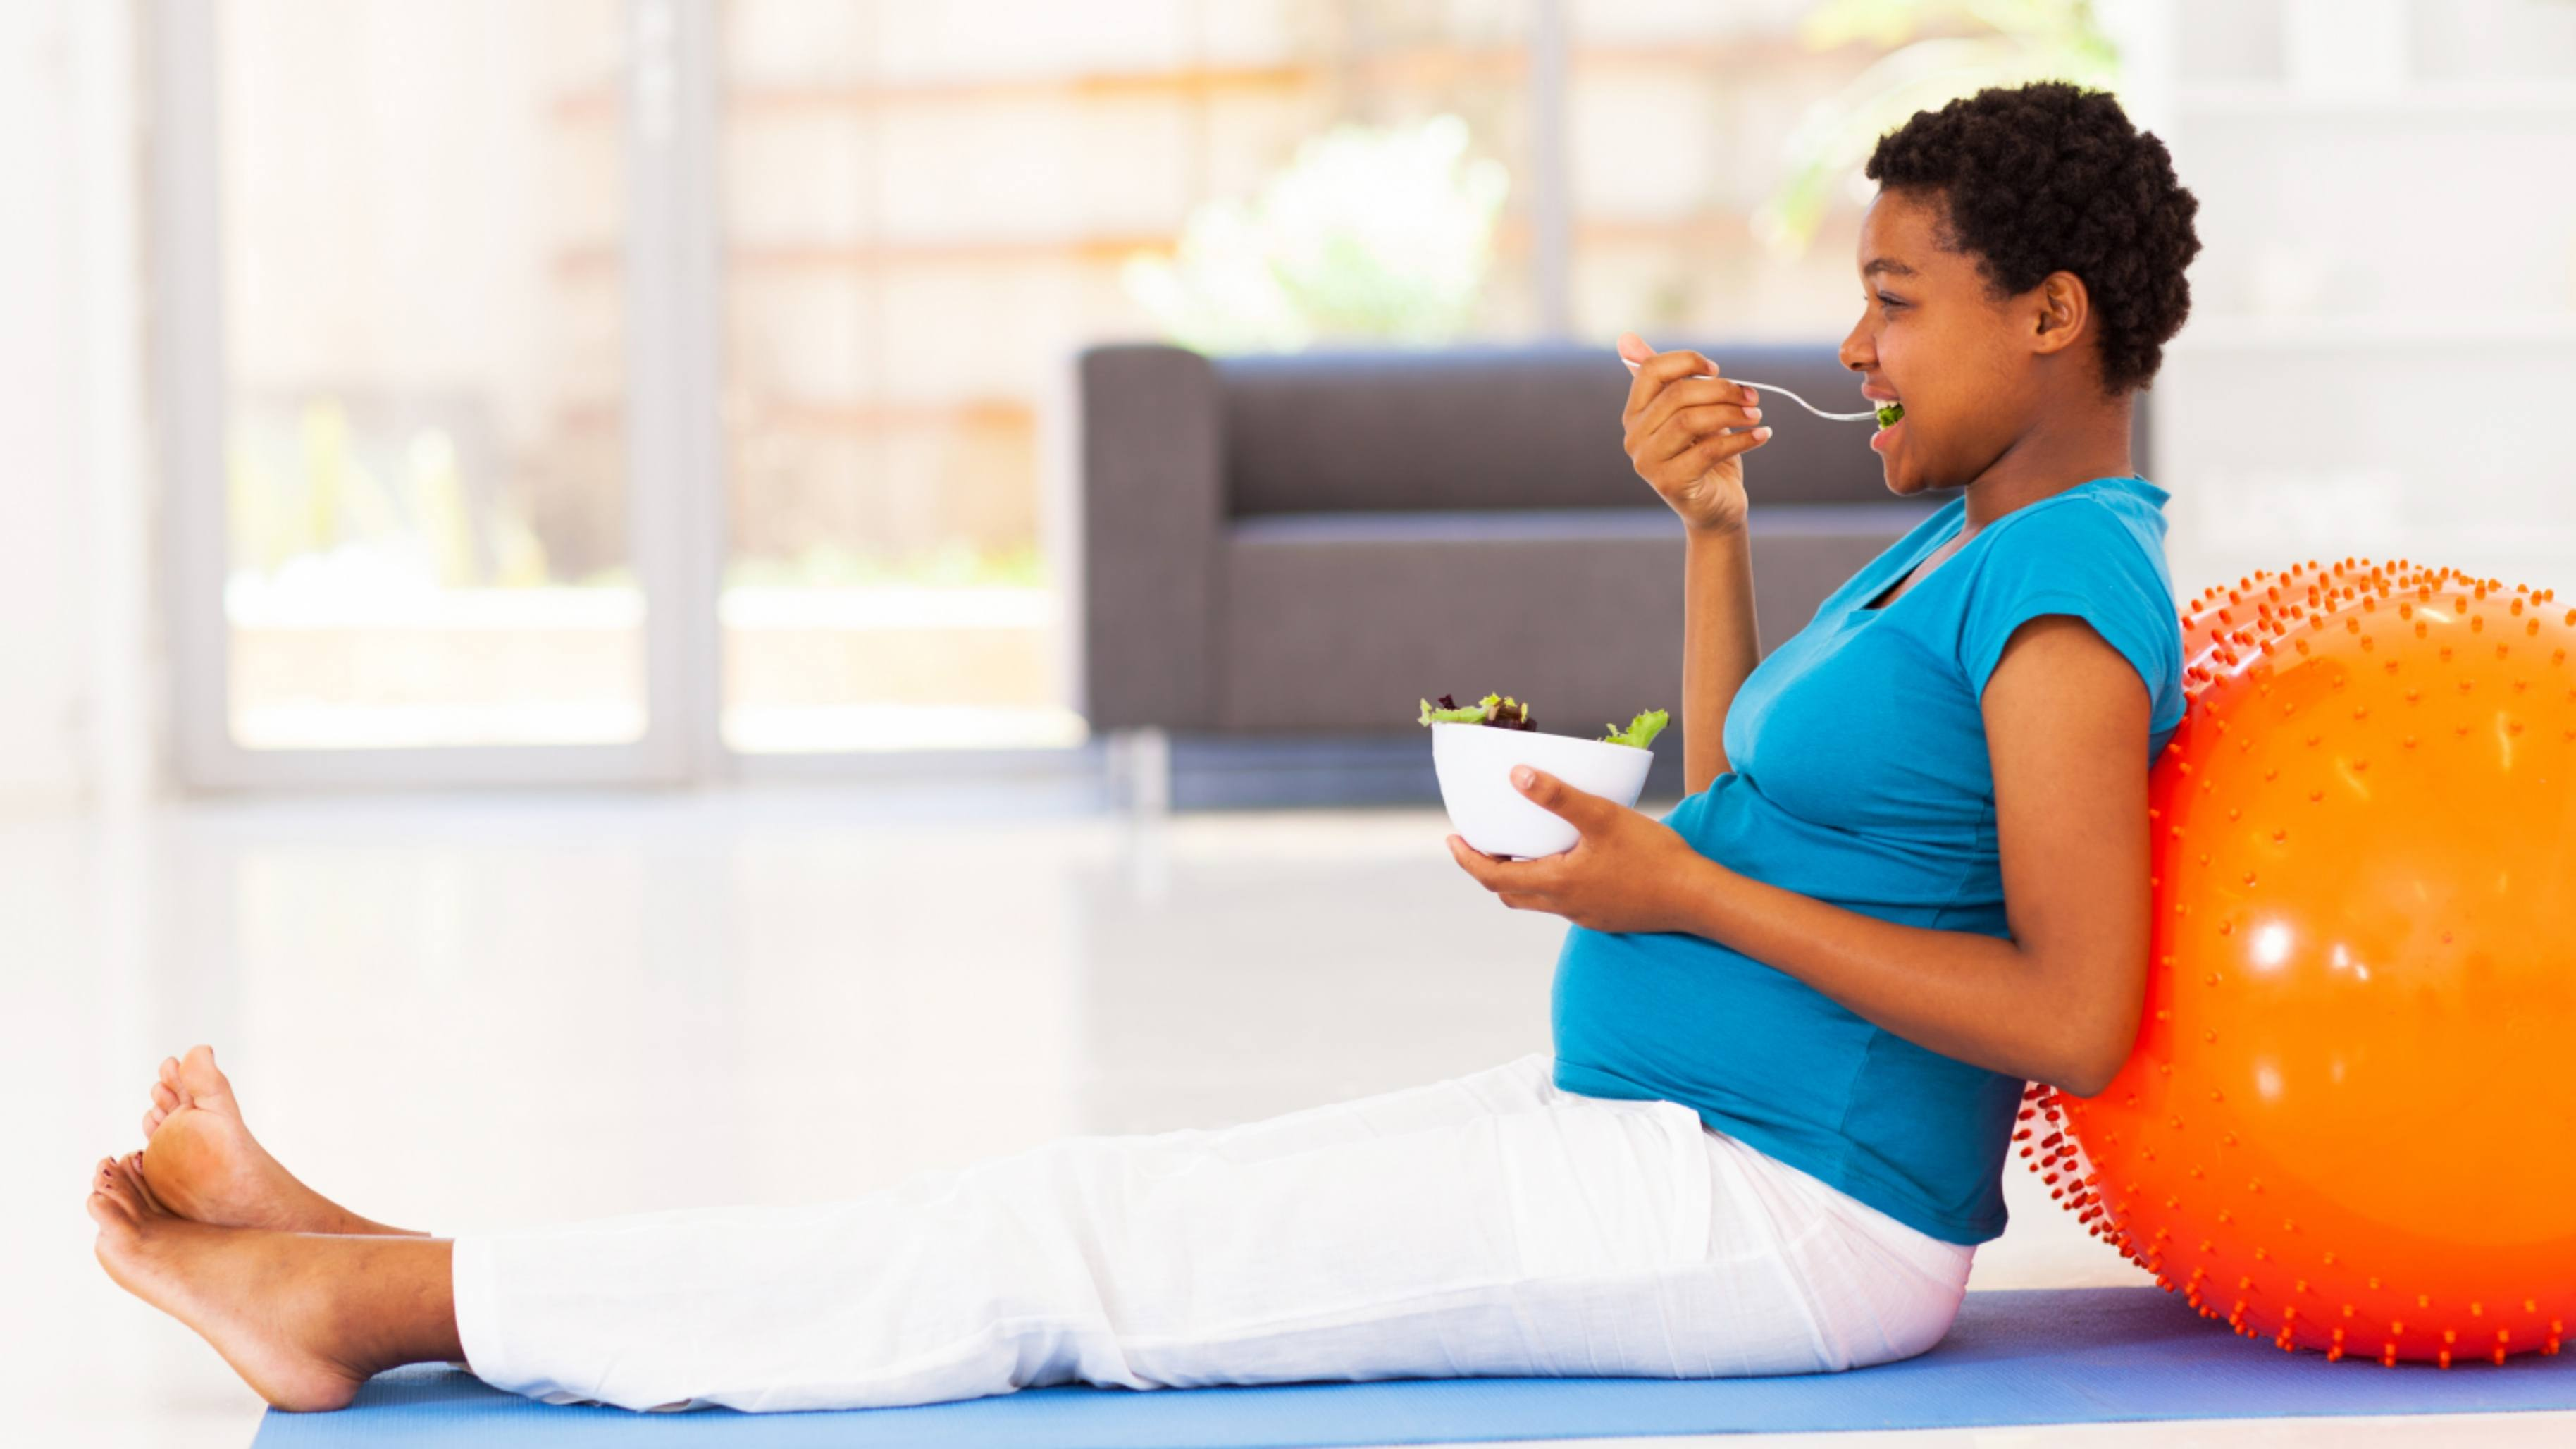 a young African American pregnant woman sitting on a floor with an exercise ball and eating a healthy salad